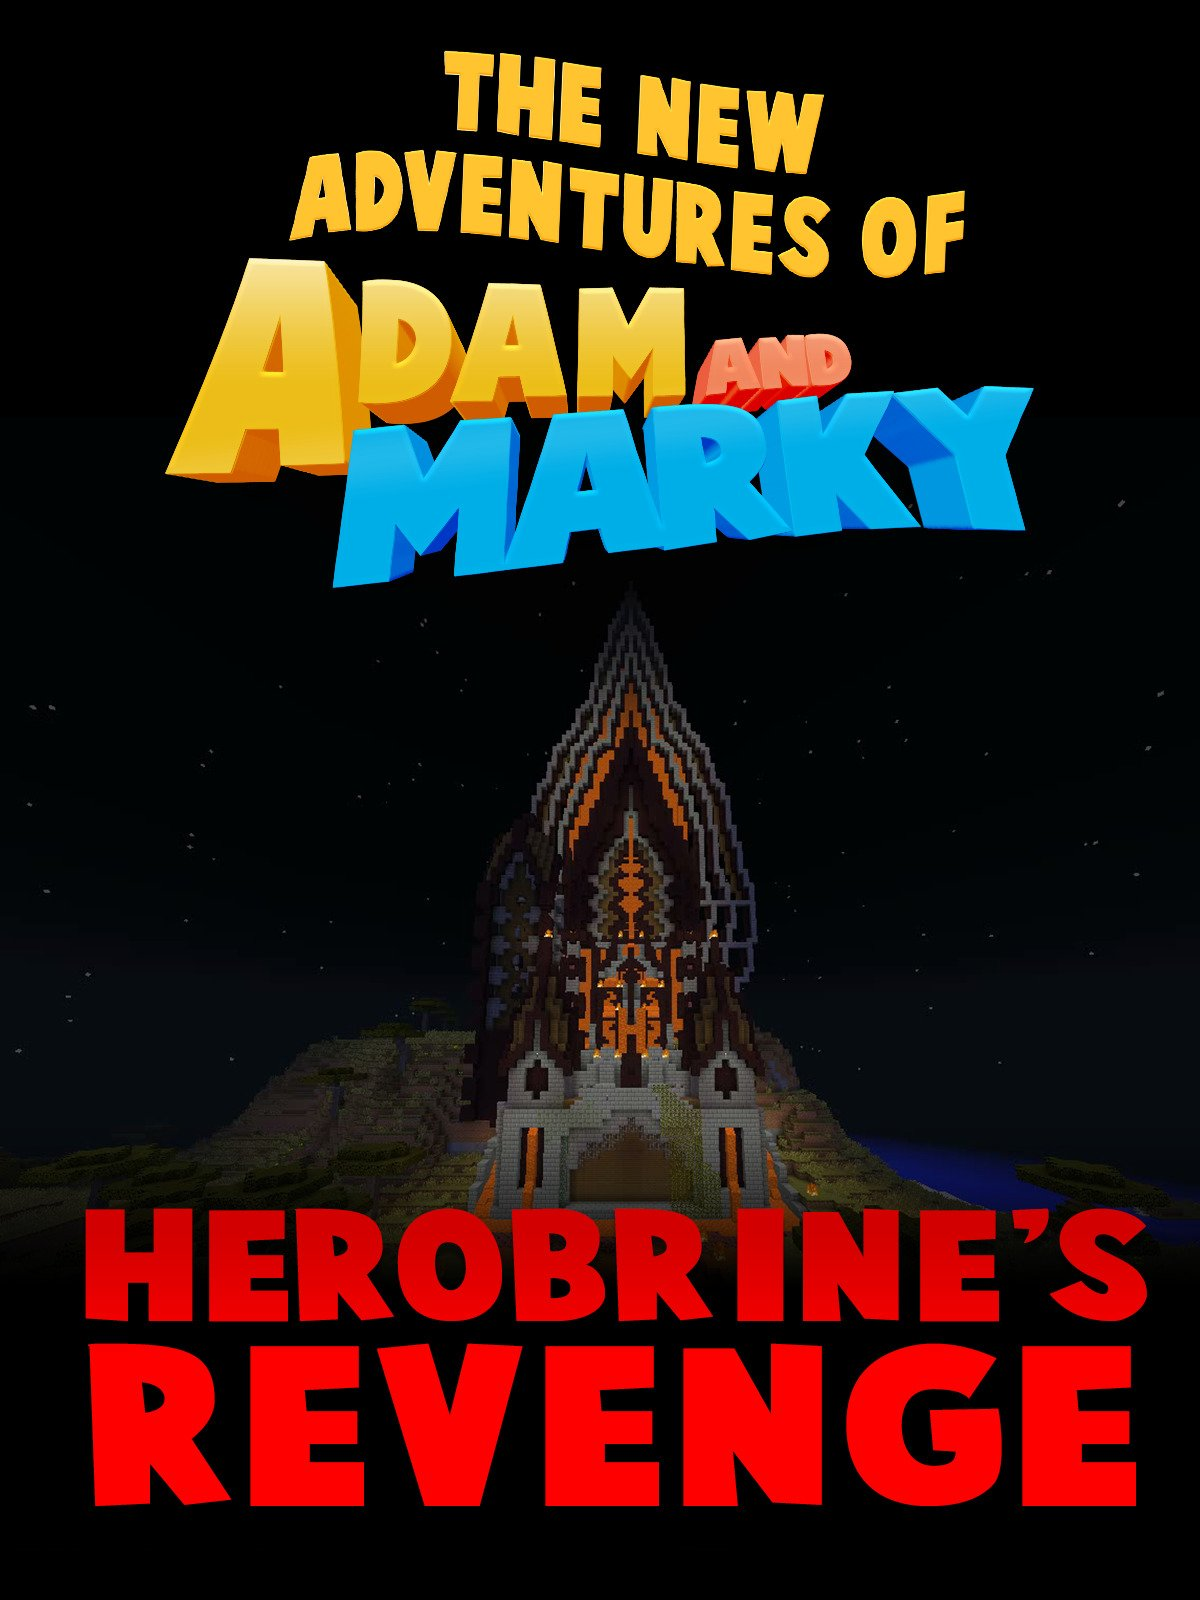 The New Adventures of Adam and Marky Herobrine's Revenge